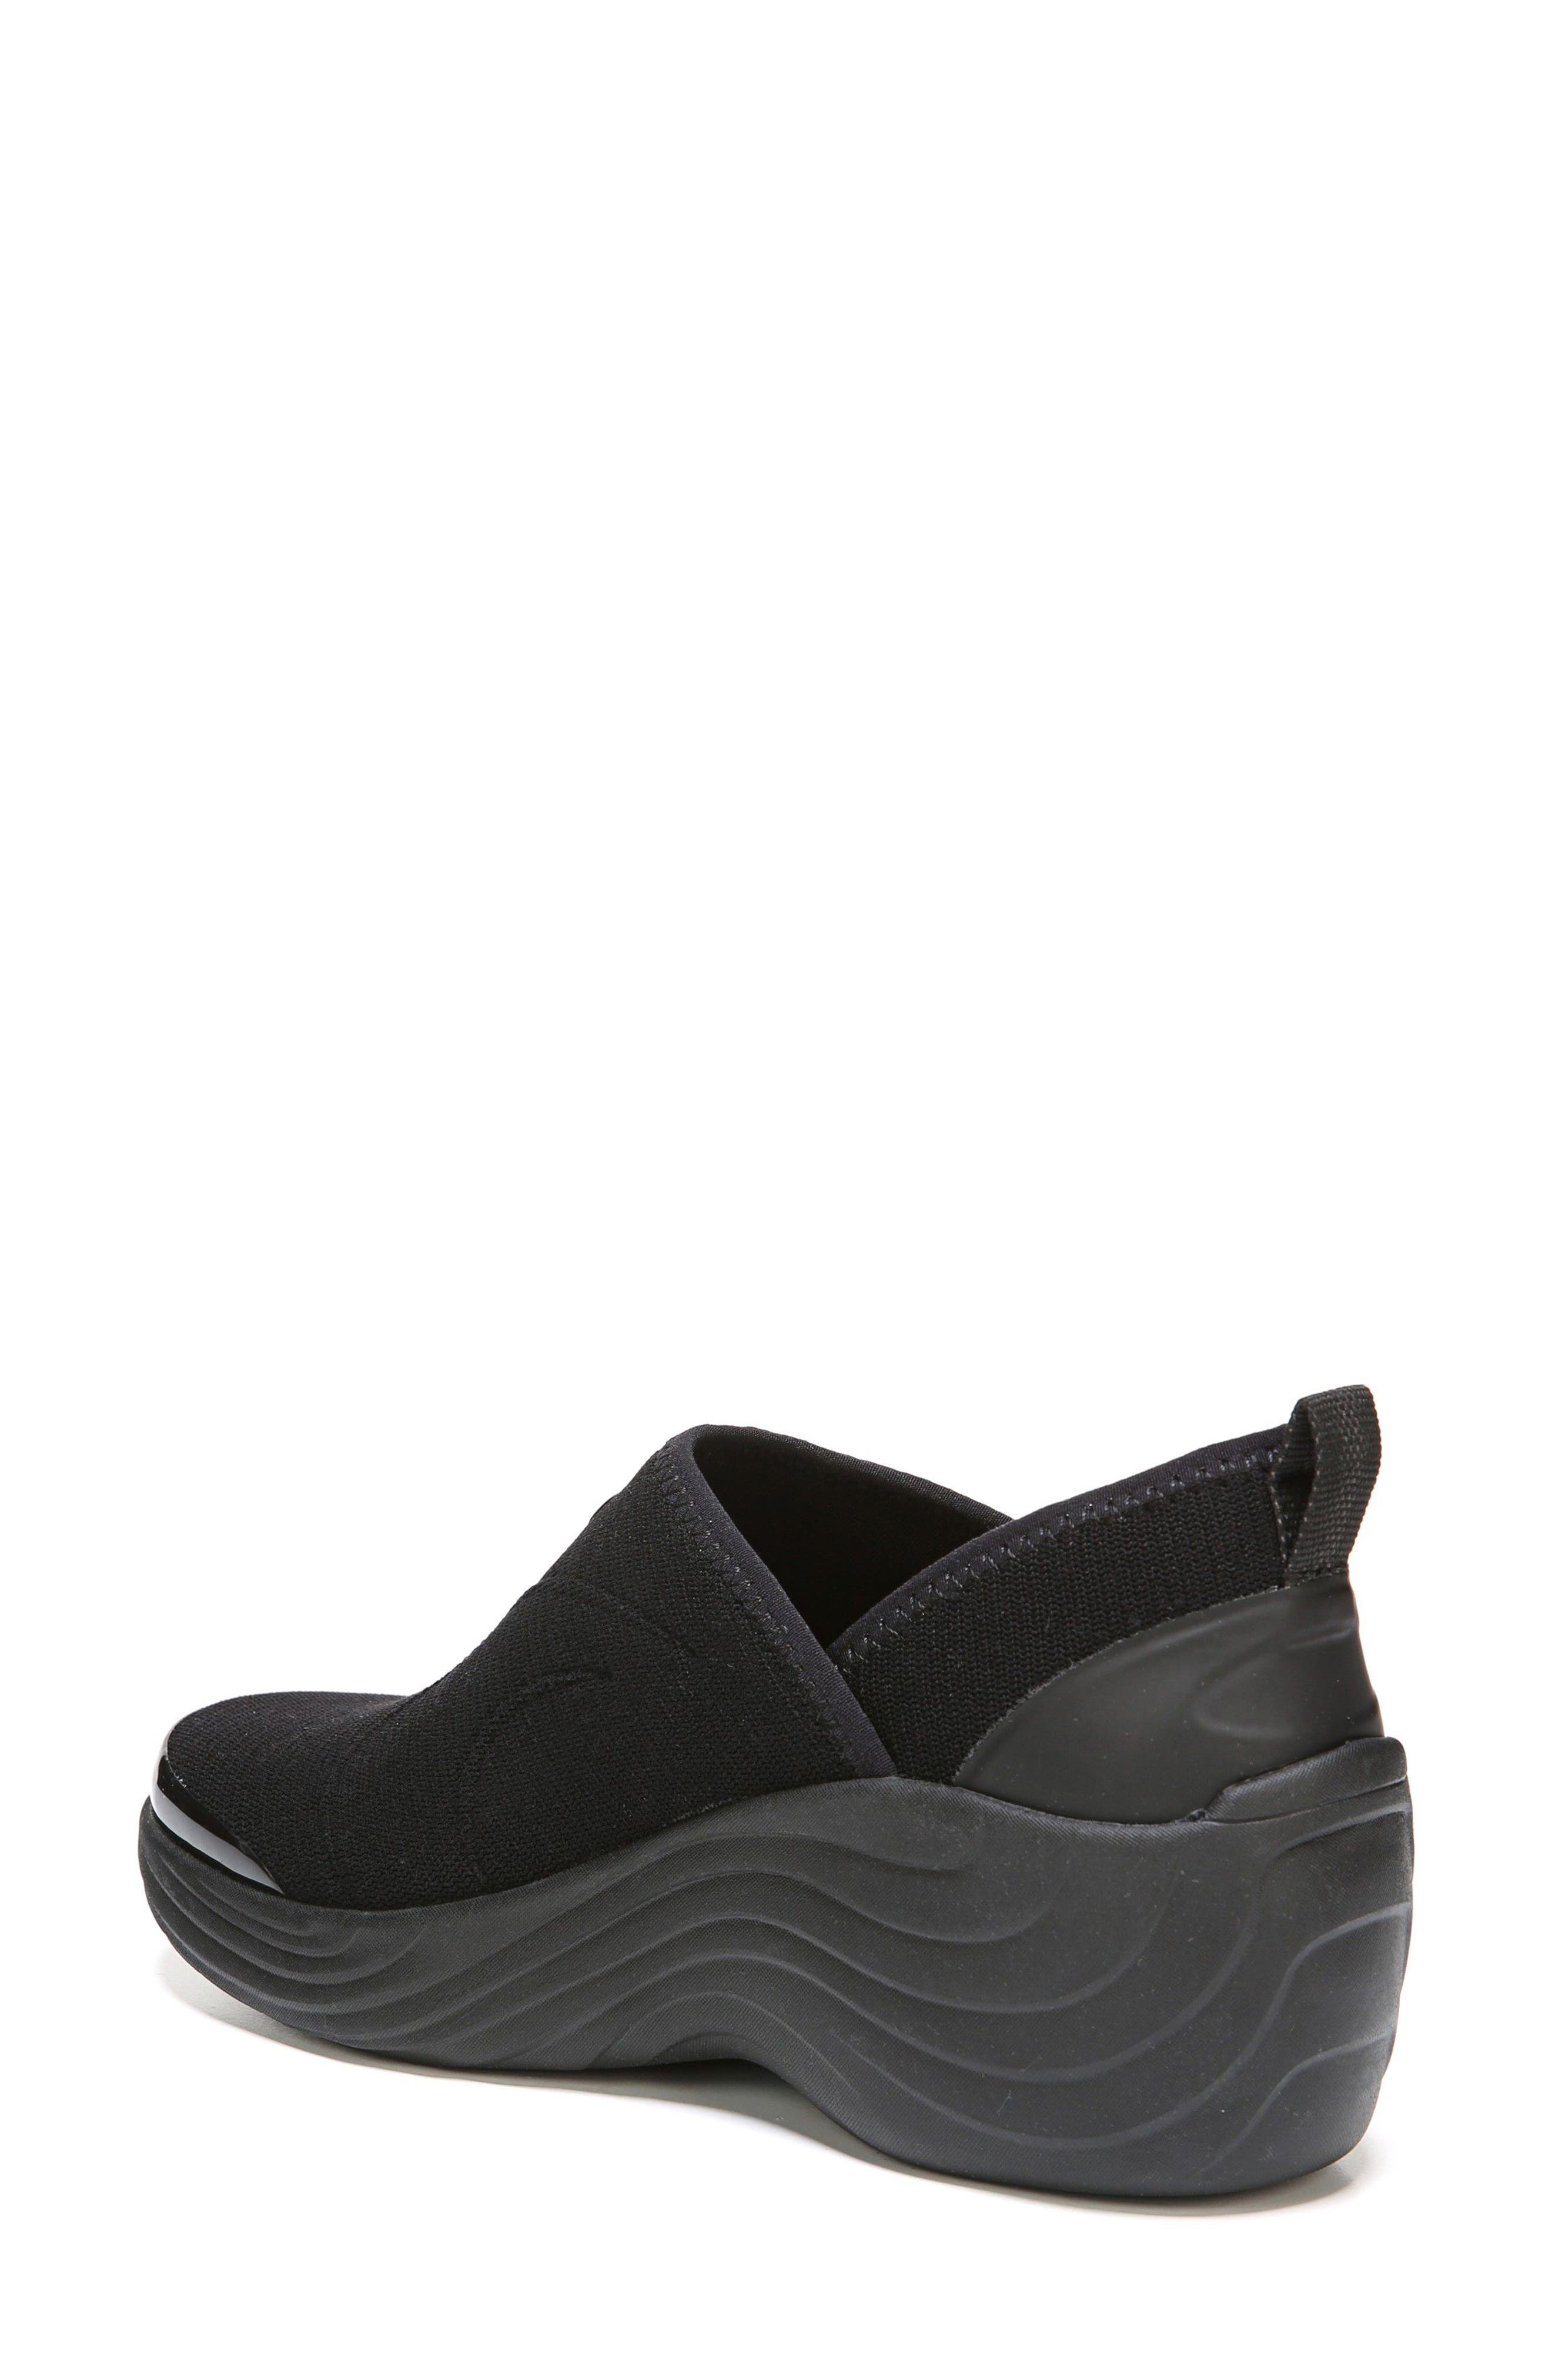 Zsa Zsa Wedge Sneaker,                             Alternate thumbnail 2, color,                             Black Fabric